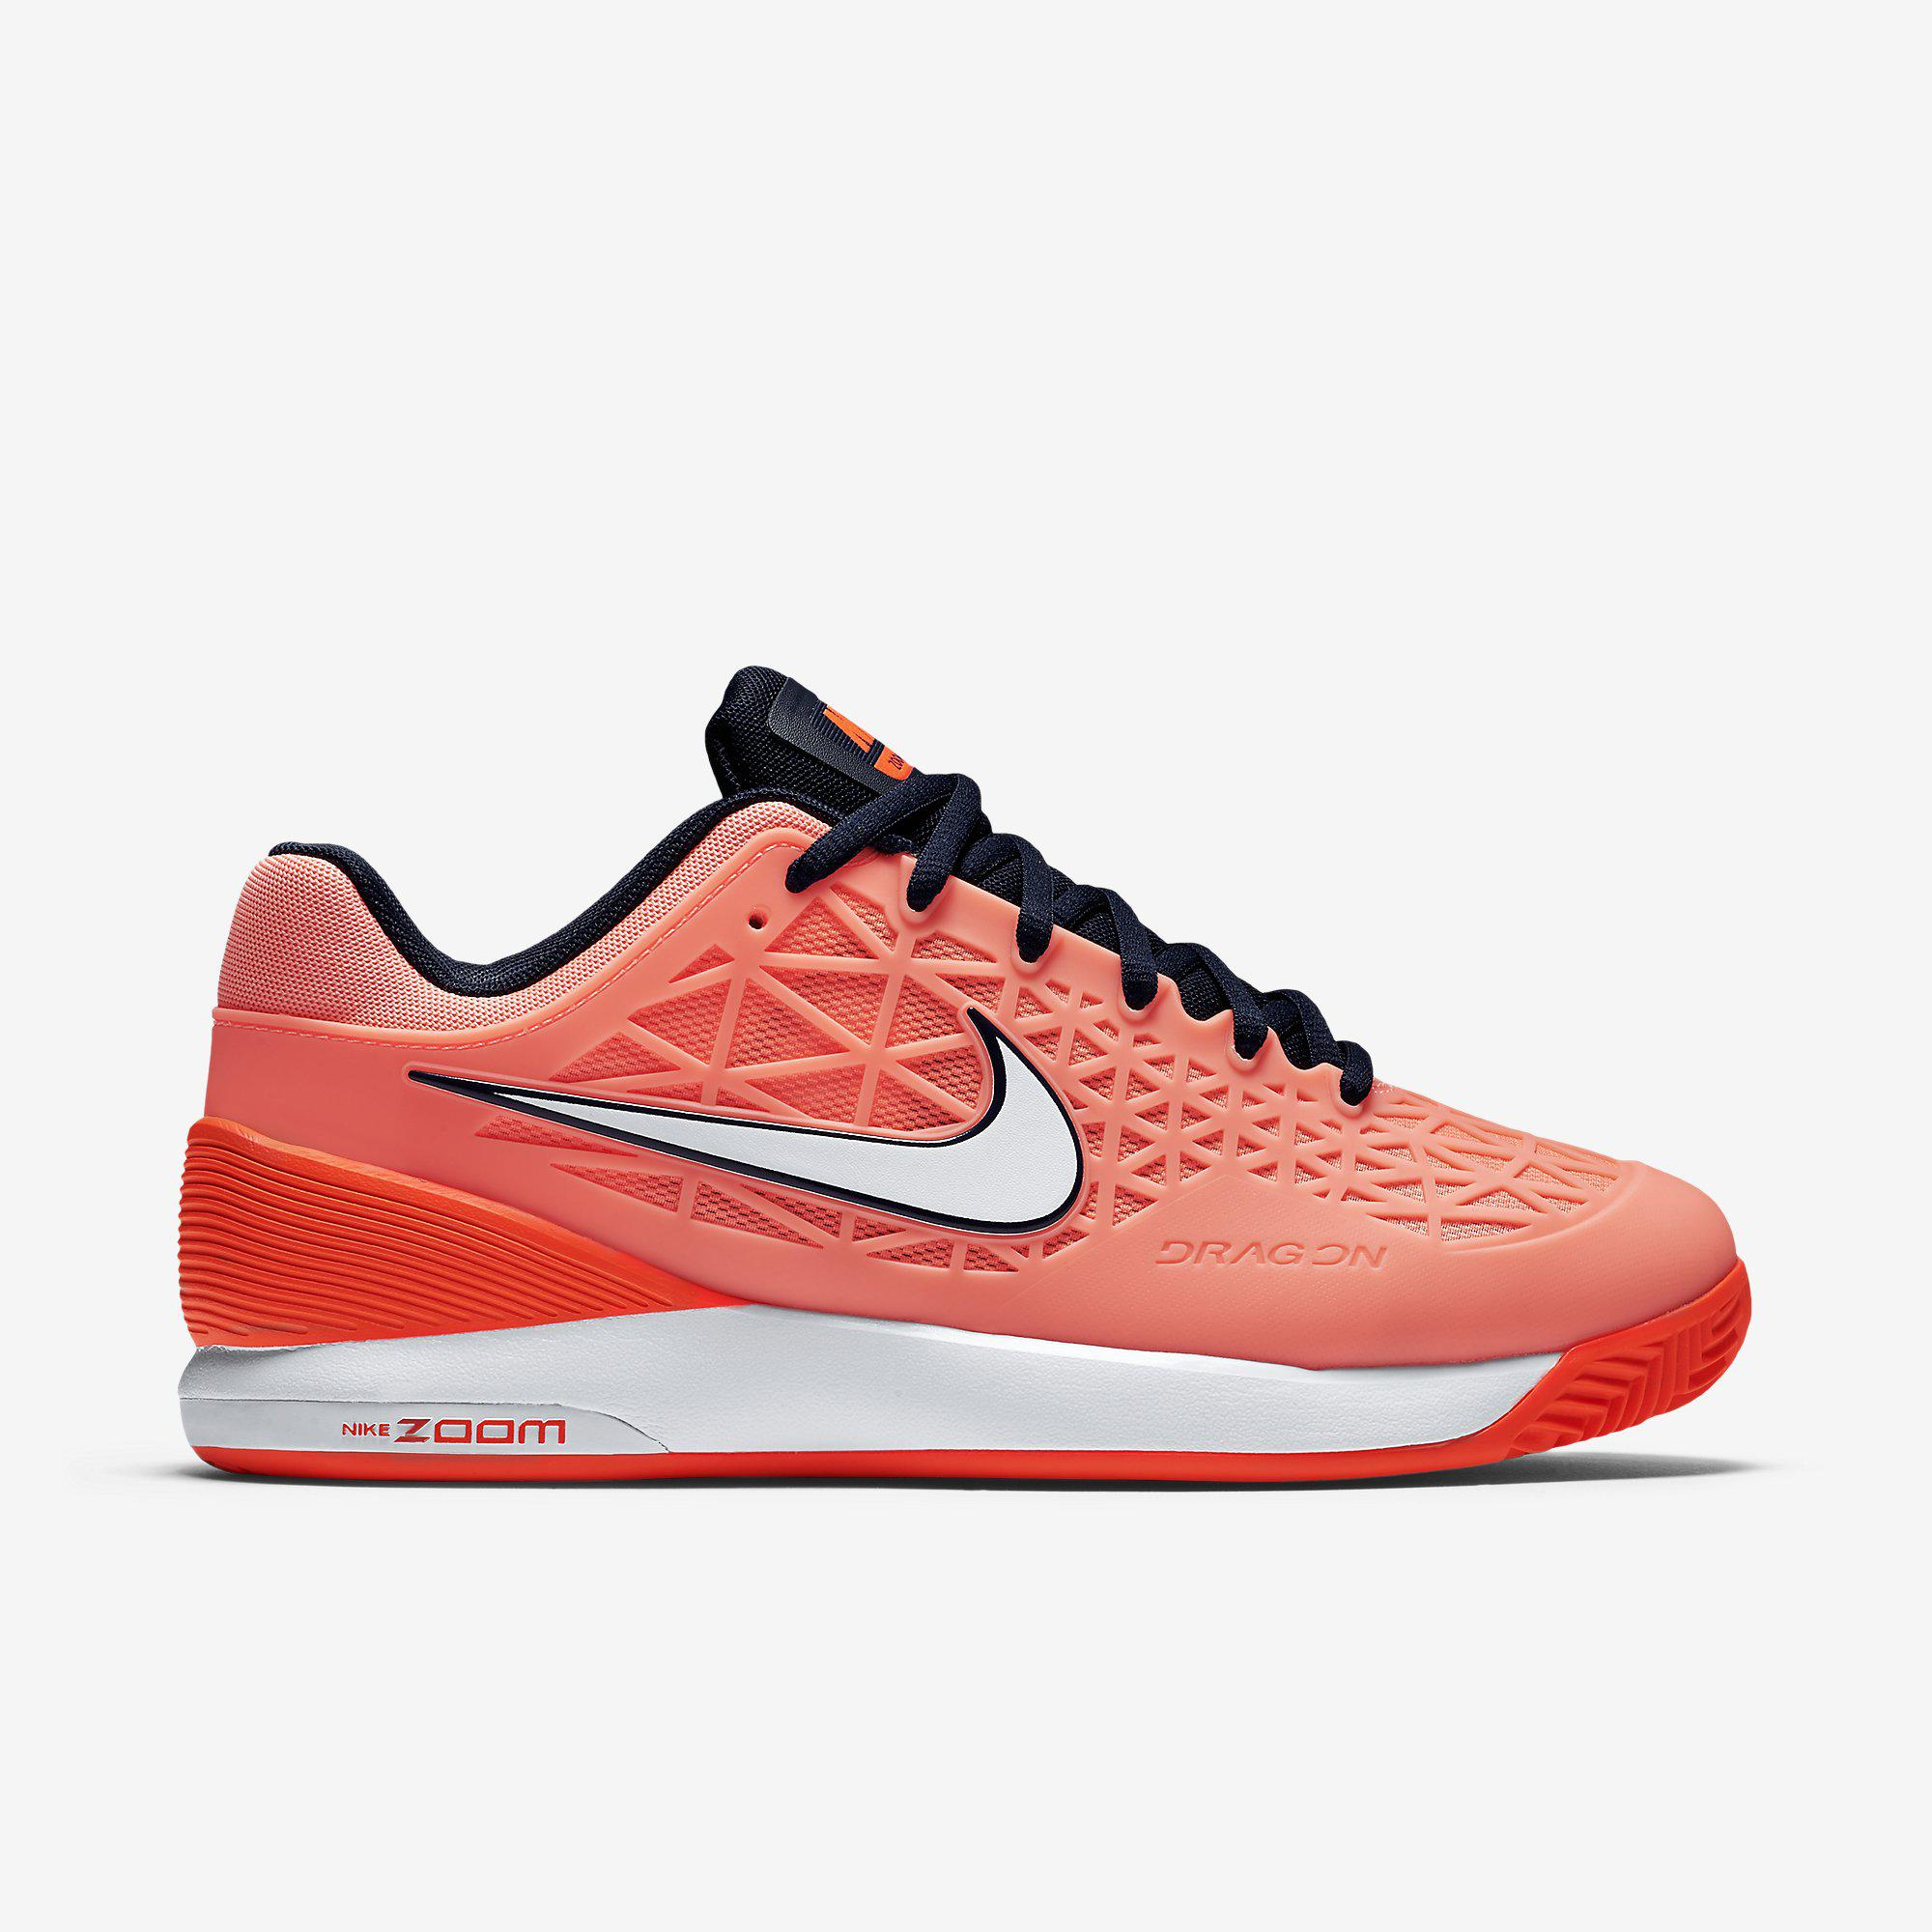 e4467d538de5 Nike Womens Zoom Cage 2 Clay Court Tennis Shoes - Atomic Pink   Crimson -  Tennisnuts.com